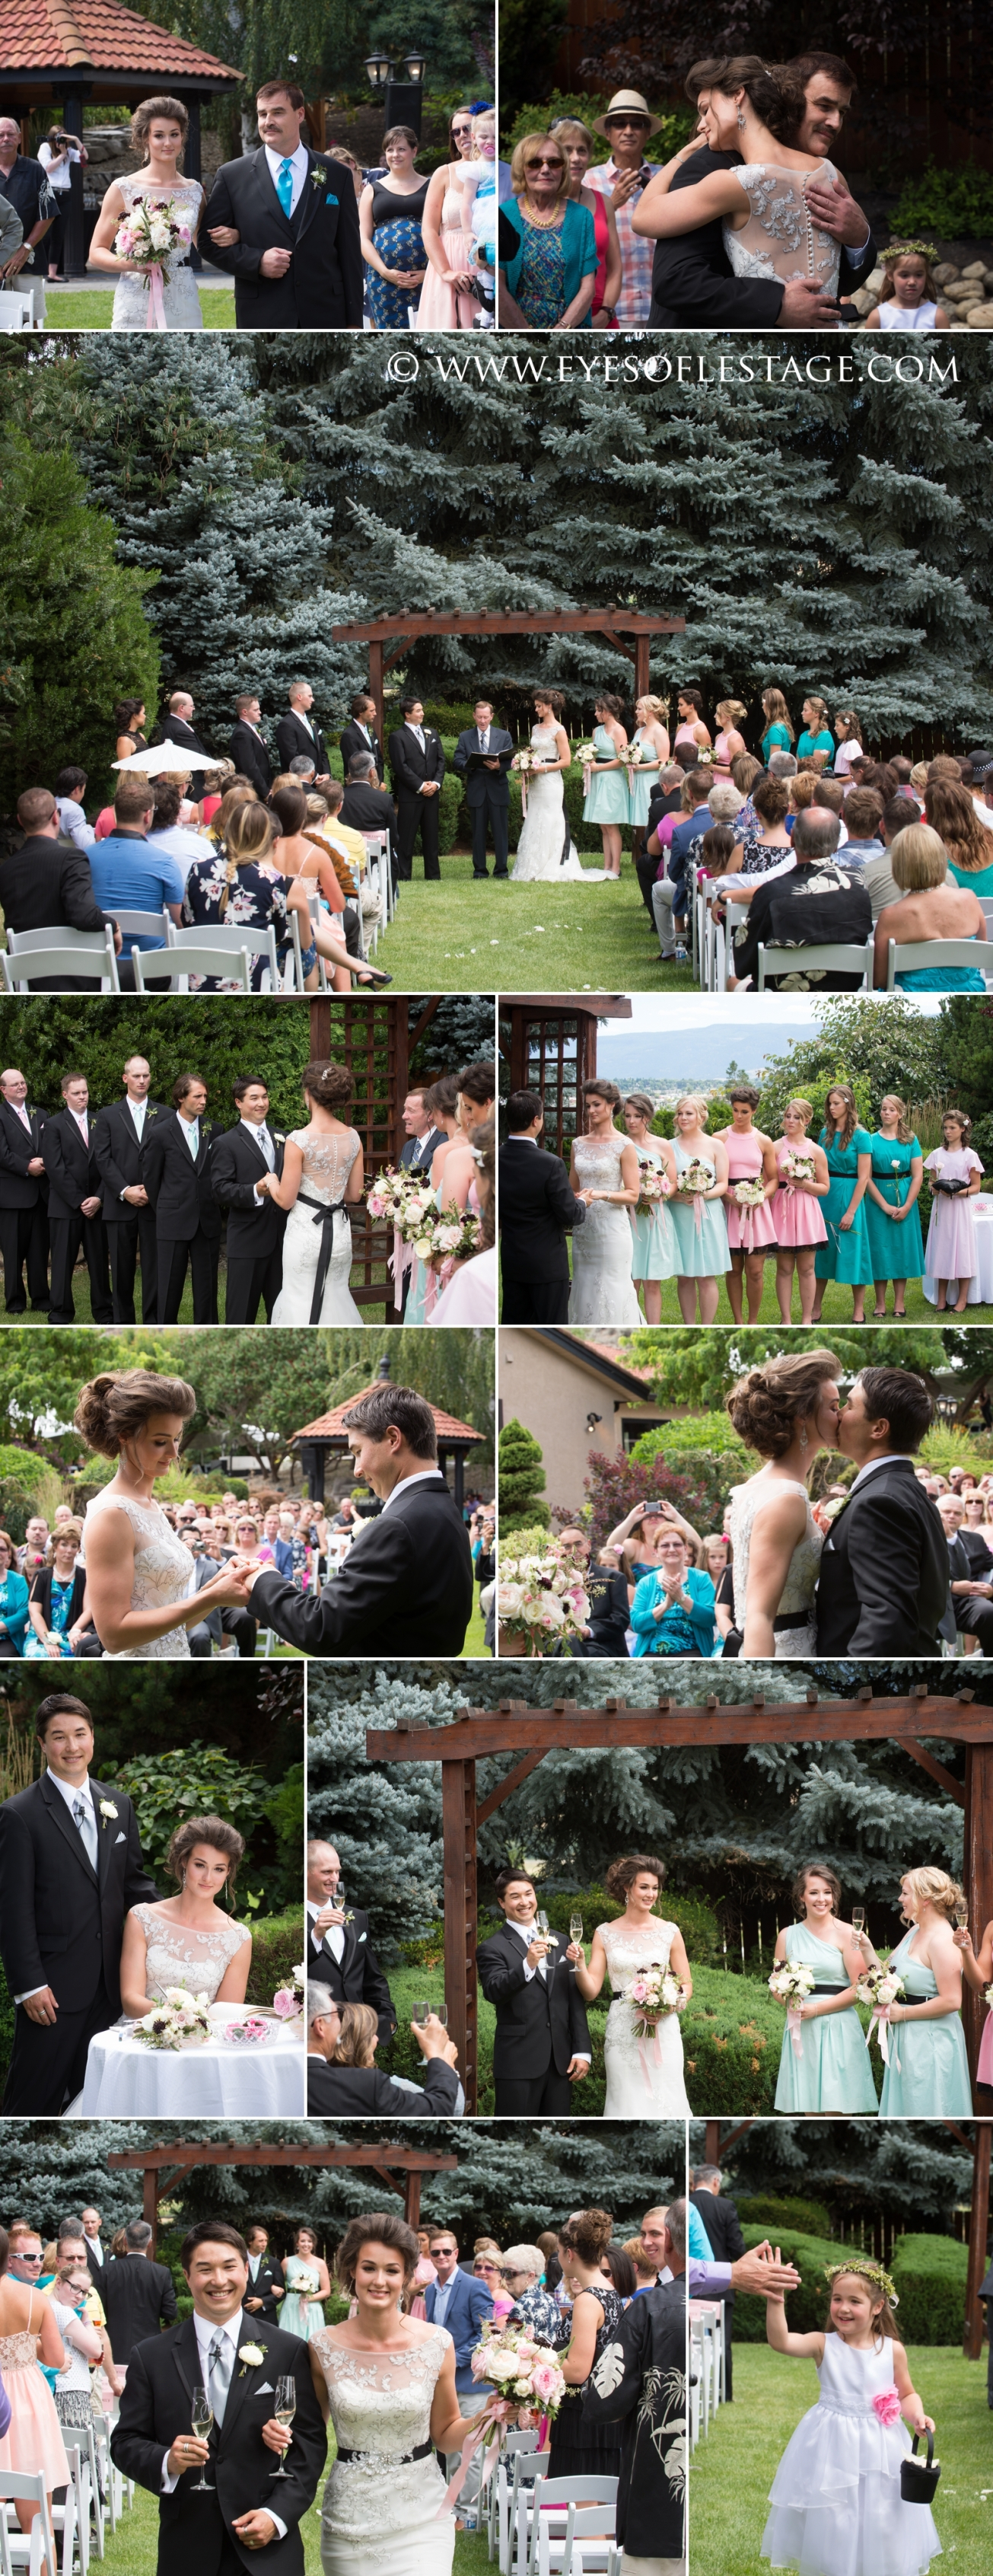 Kelowna Vernon Wedding Photography - Suzanne Le Stage - Durali Villa 7